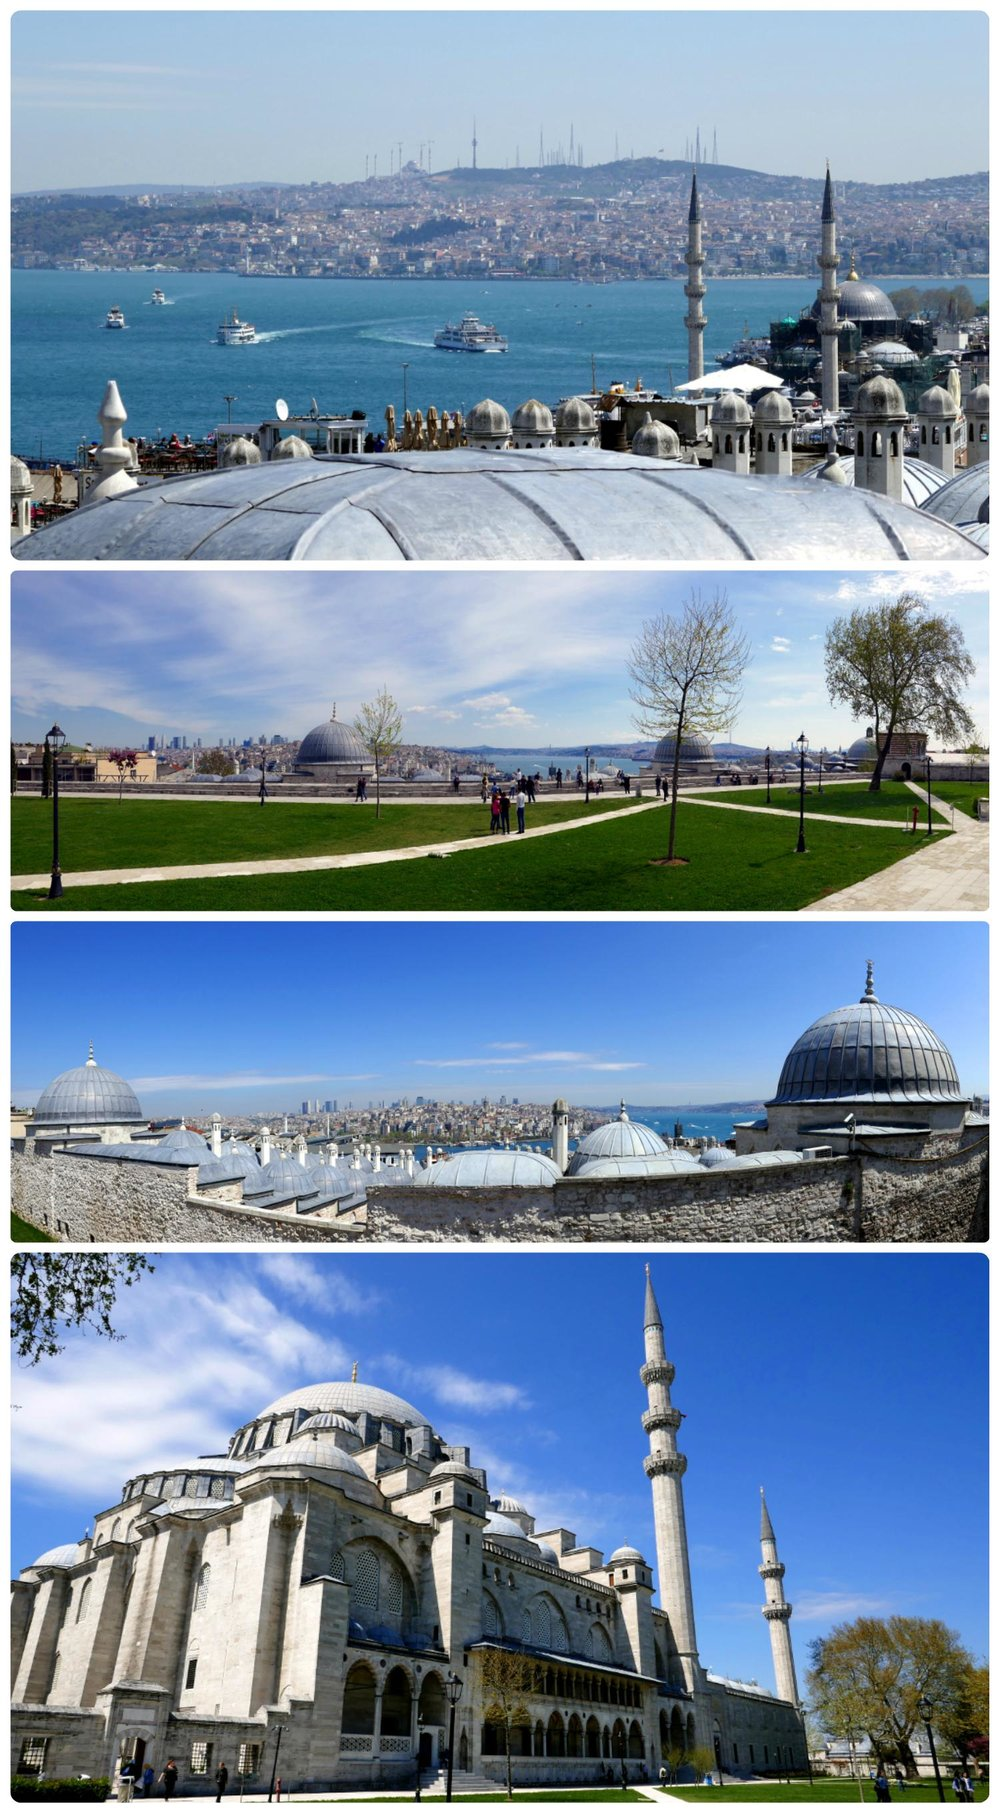 All images taken at Süleymaniye Mosque. Top to bottom: The Bosphorus from the rear of the mosque, the grass and pathways behind the mosque, looking out over the wall to the Golden Horn and the Bosphorus, the rear exterior of the mosque.